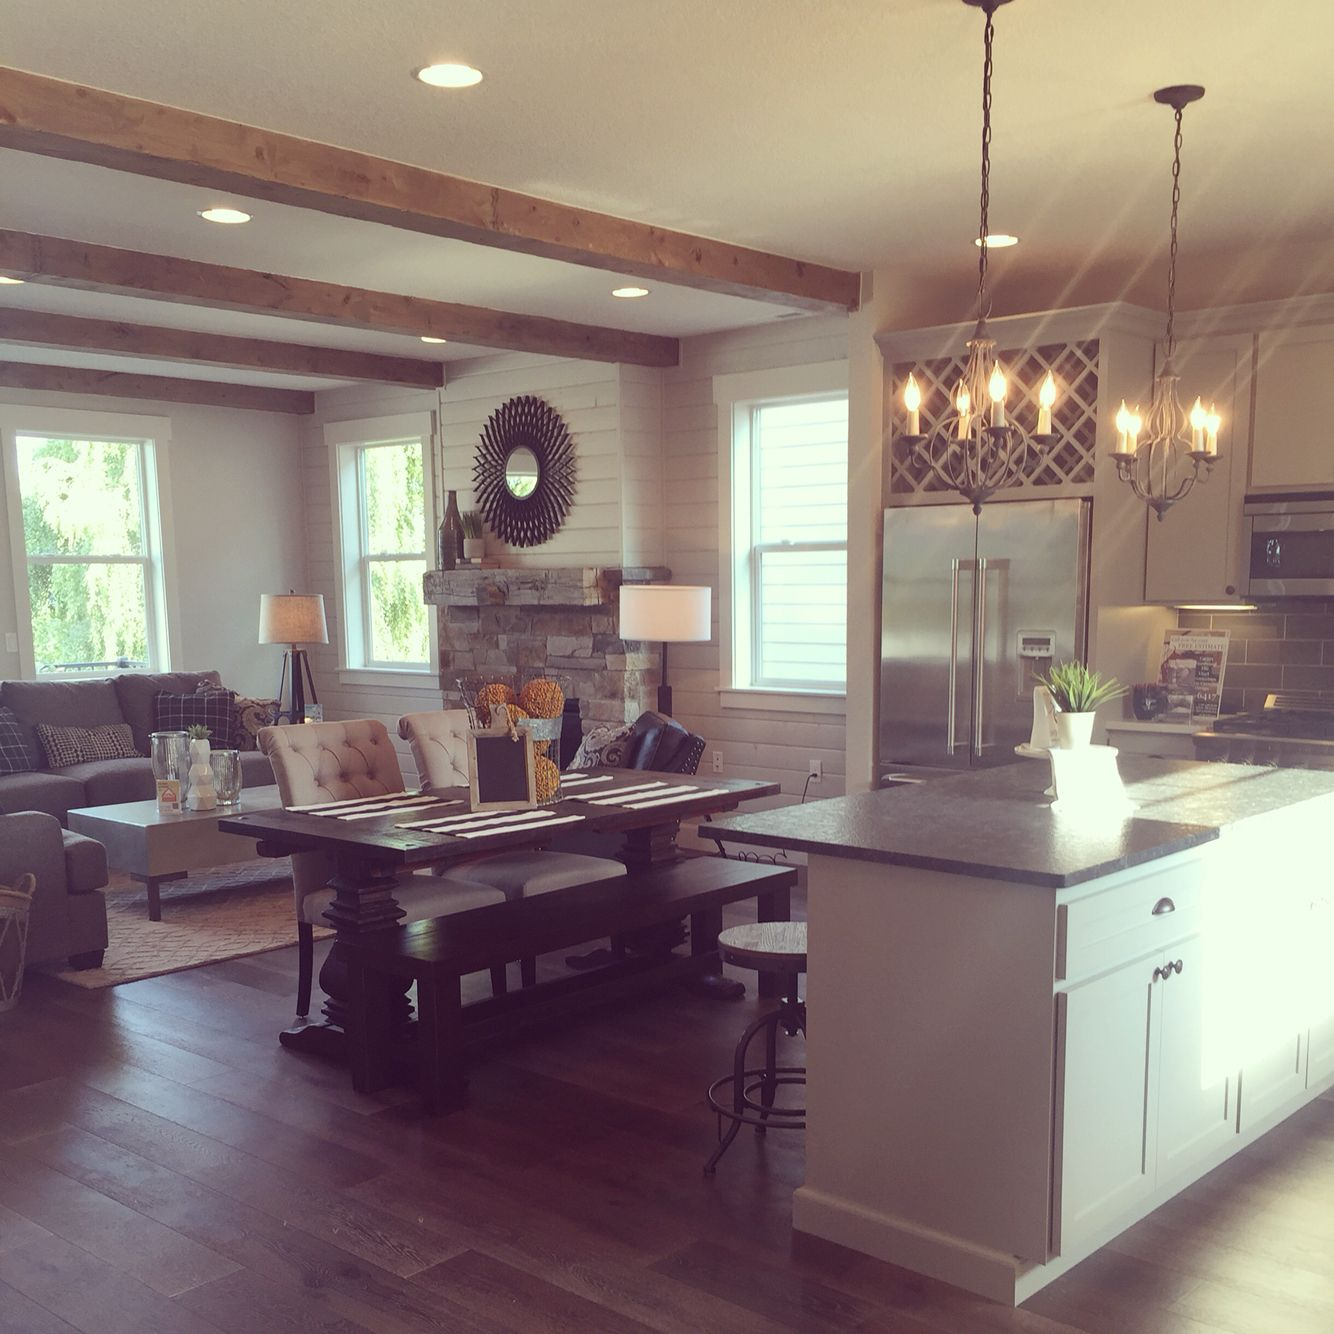 Rustic Yellow Kitchen: Rustic Industrial Living Room. Interior Design By Janna Allbritton Of Yellow Prairie Interior